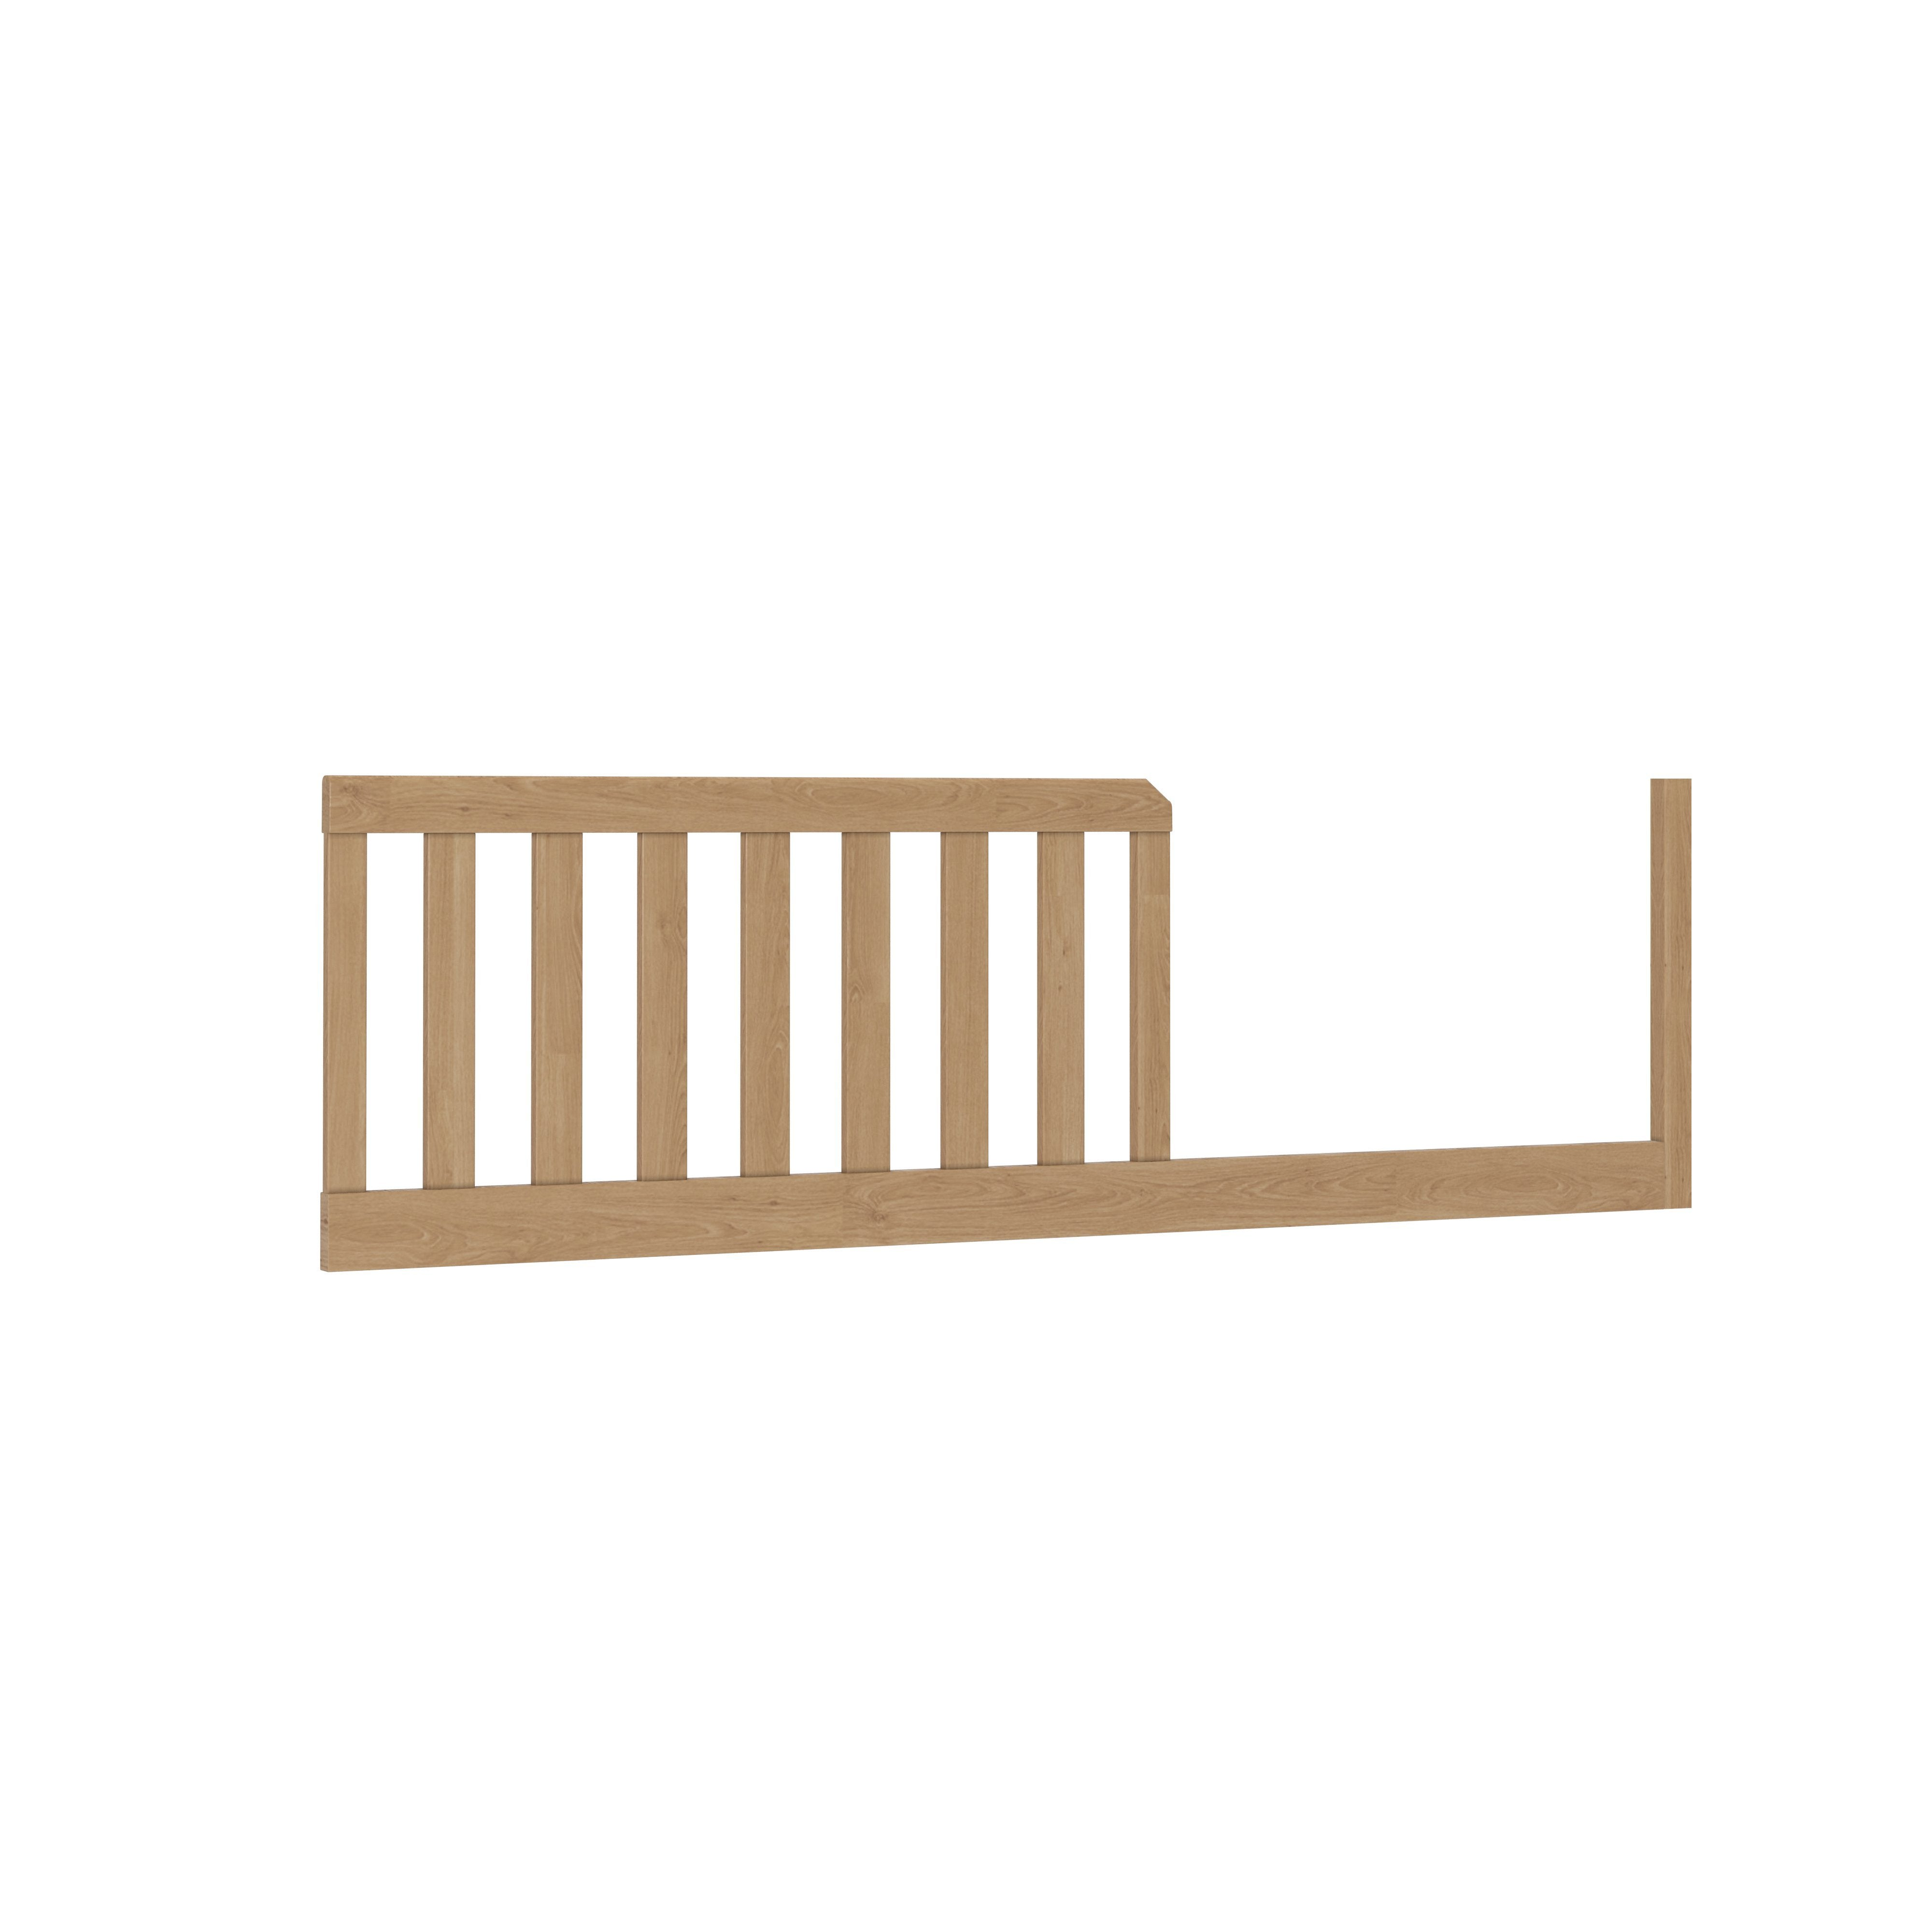 Soho 2-in-1 Convertible Crib - Natural - Project Nursery